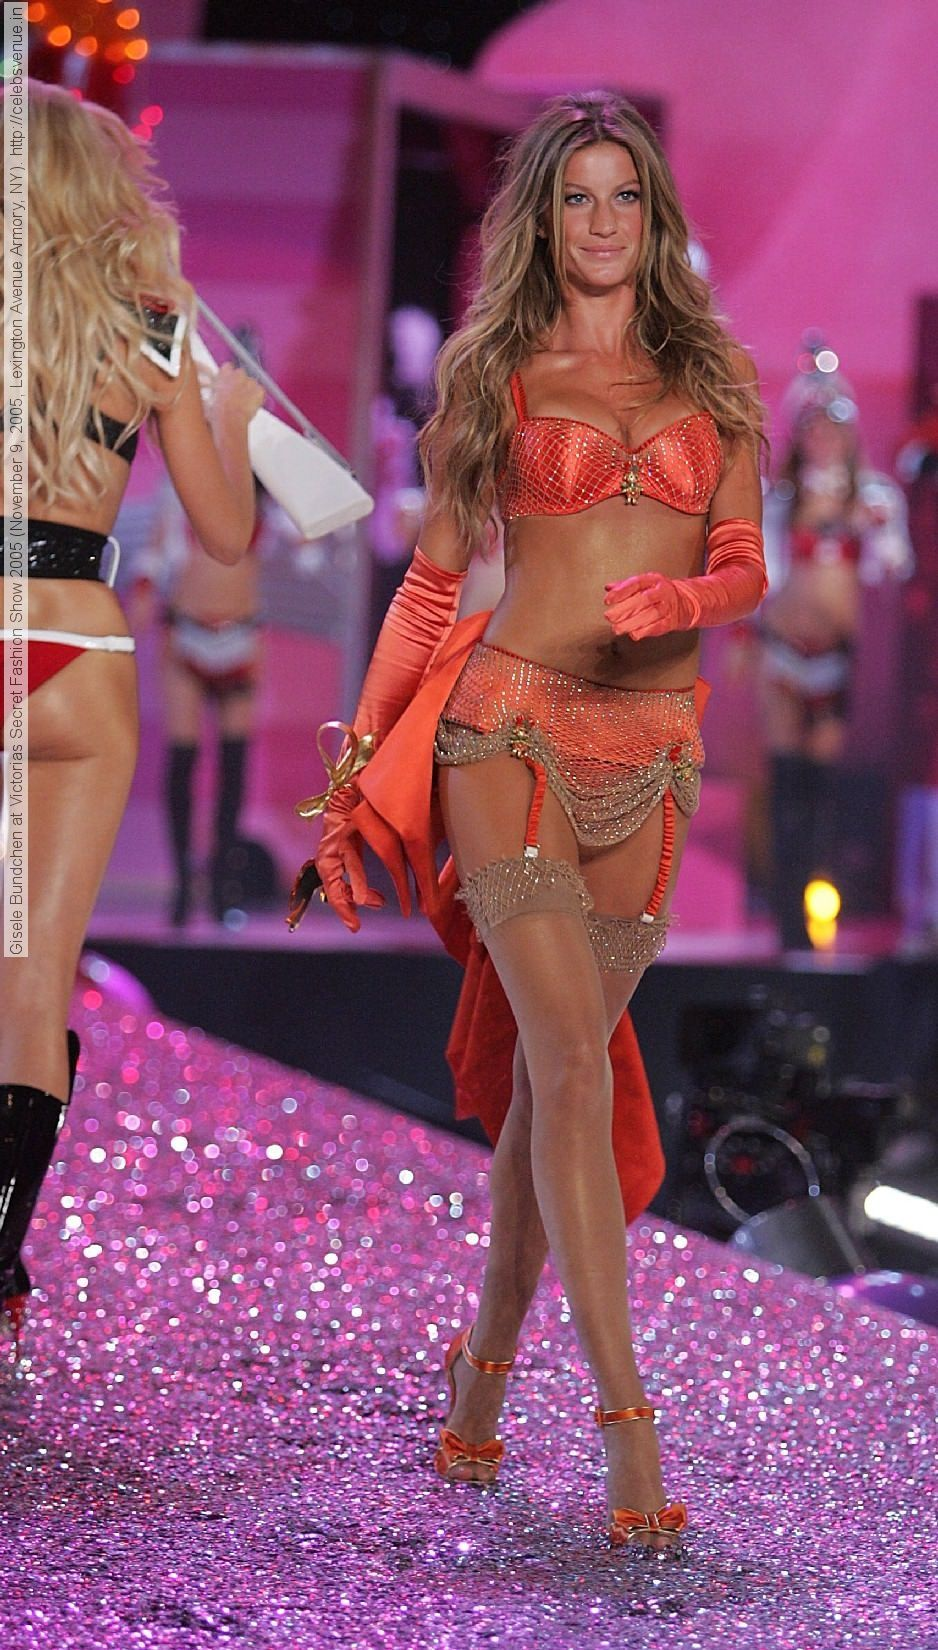 Gisele bundchen at victorias secret fashion show november